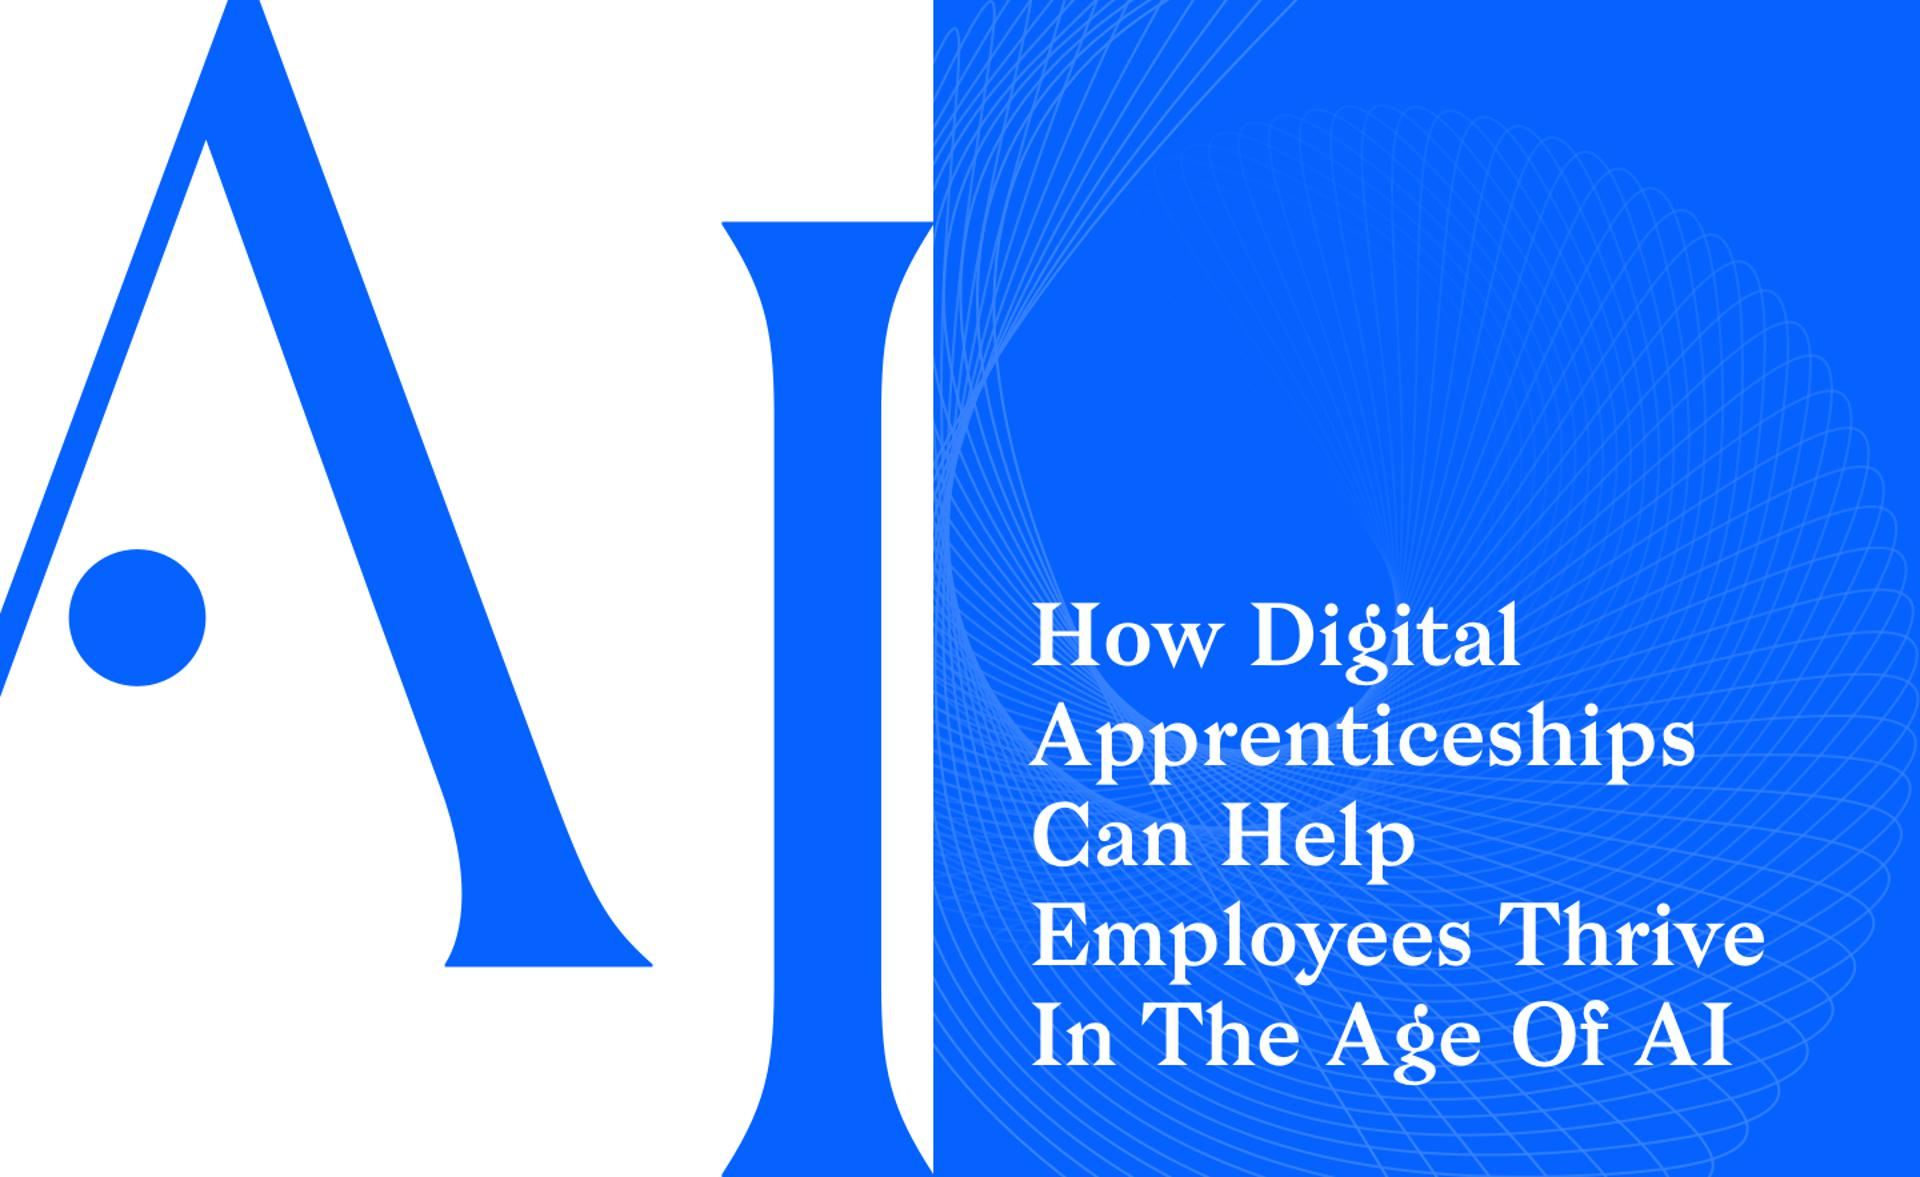 How Digital Apprenticeships Can Help Employees Thrive In The Age Of AI